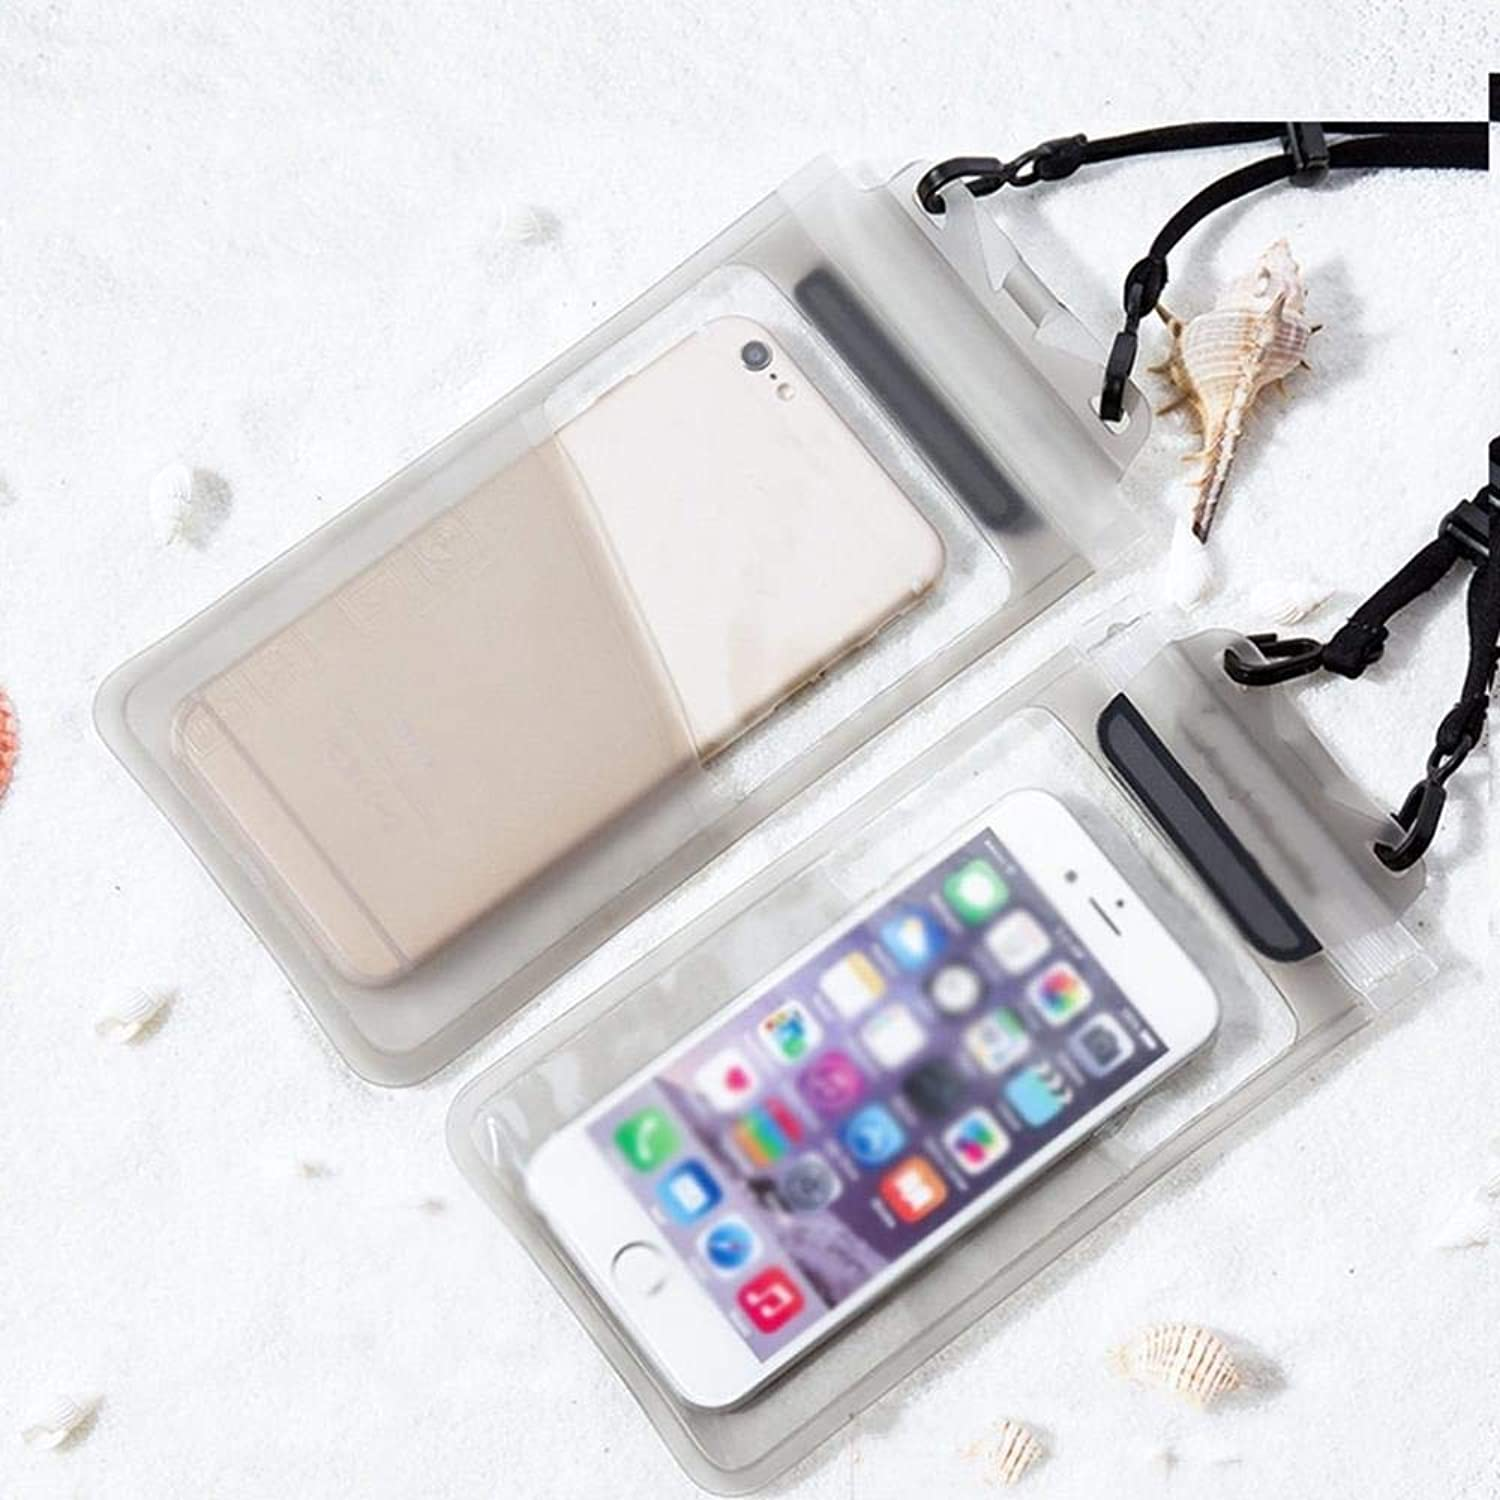 Mobile Phone Waterproof Bag, Smartphone Diving Suit(6.5 Inches Or Less)